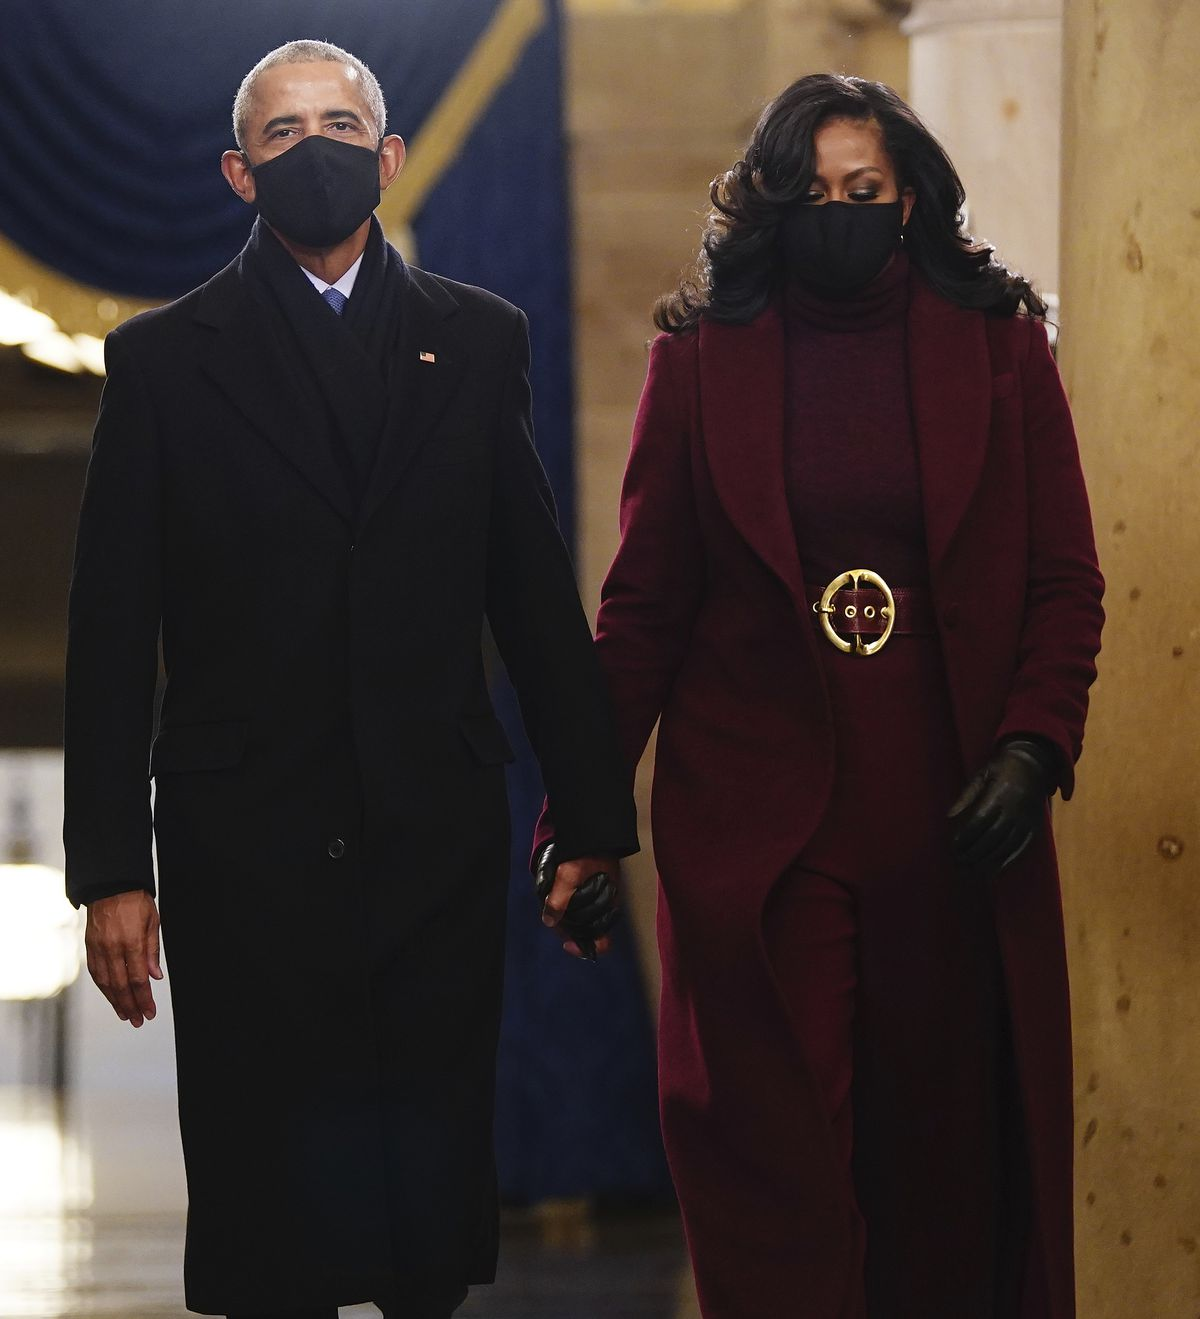 Former President Barack Obama and Michelle Obama arrive in the Crypt of the US Capitol for President-elect Joe Biden's inauguration ceremony on Wednesday, Jan. 20, 2021 in Washington.